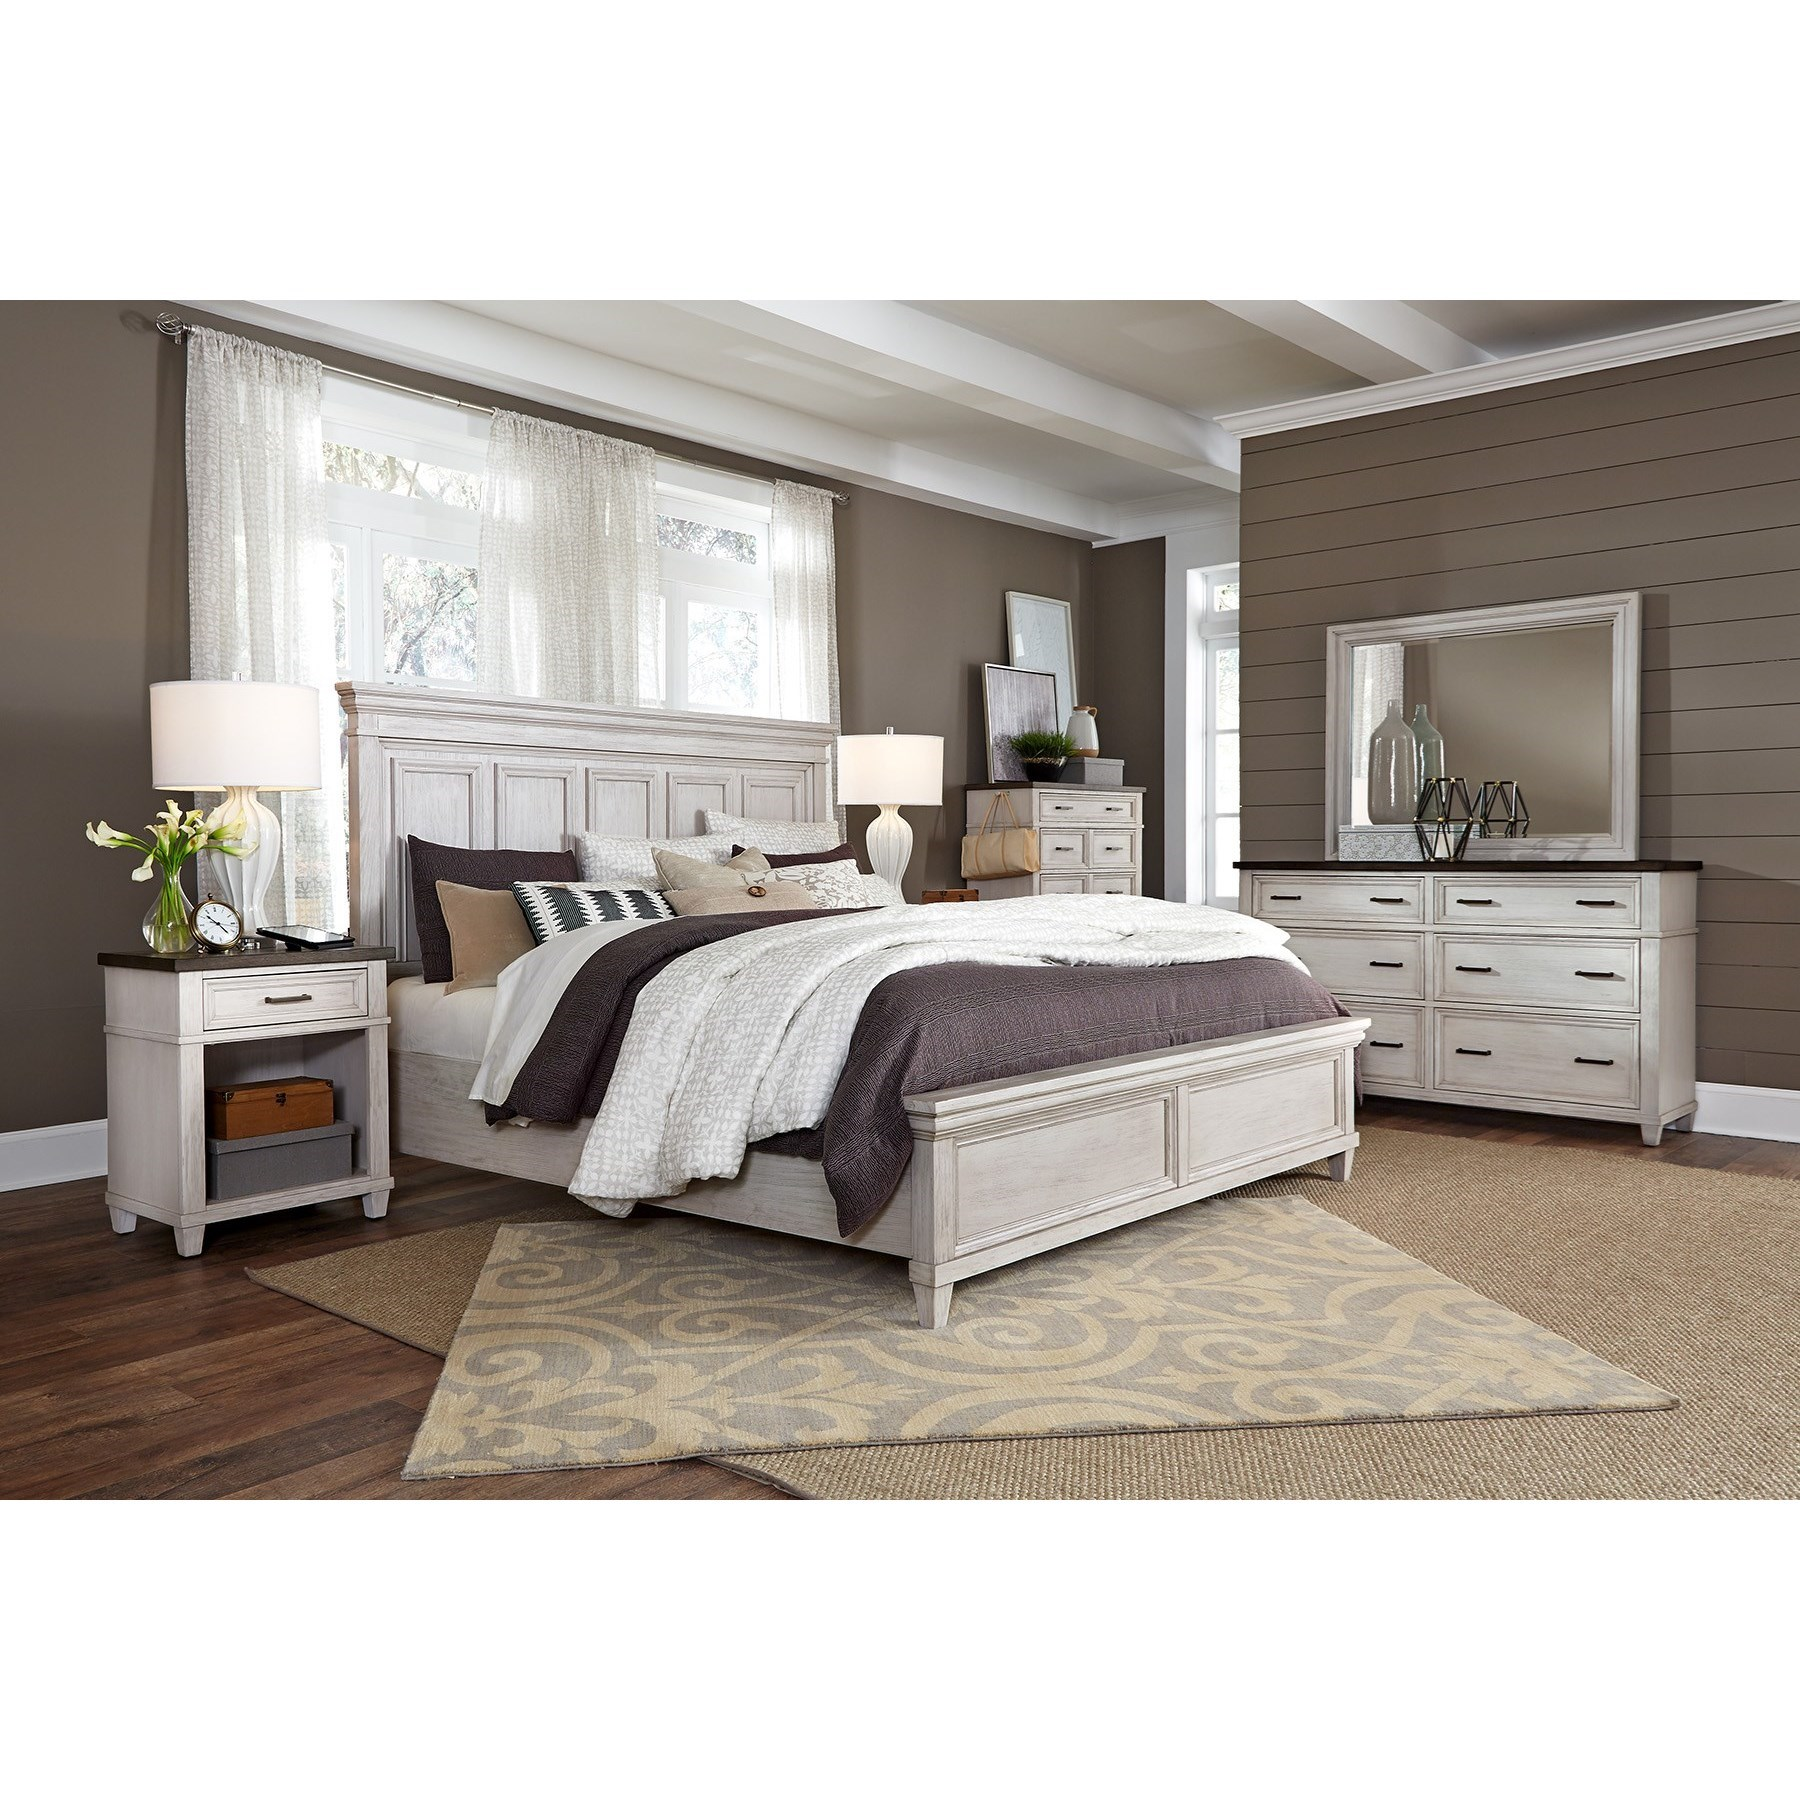 Caraway King Bedroom Group by Aspenhome at Prime Brothers Furniture